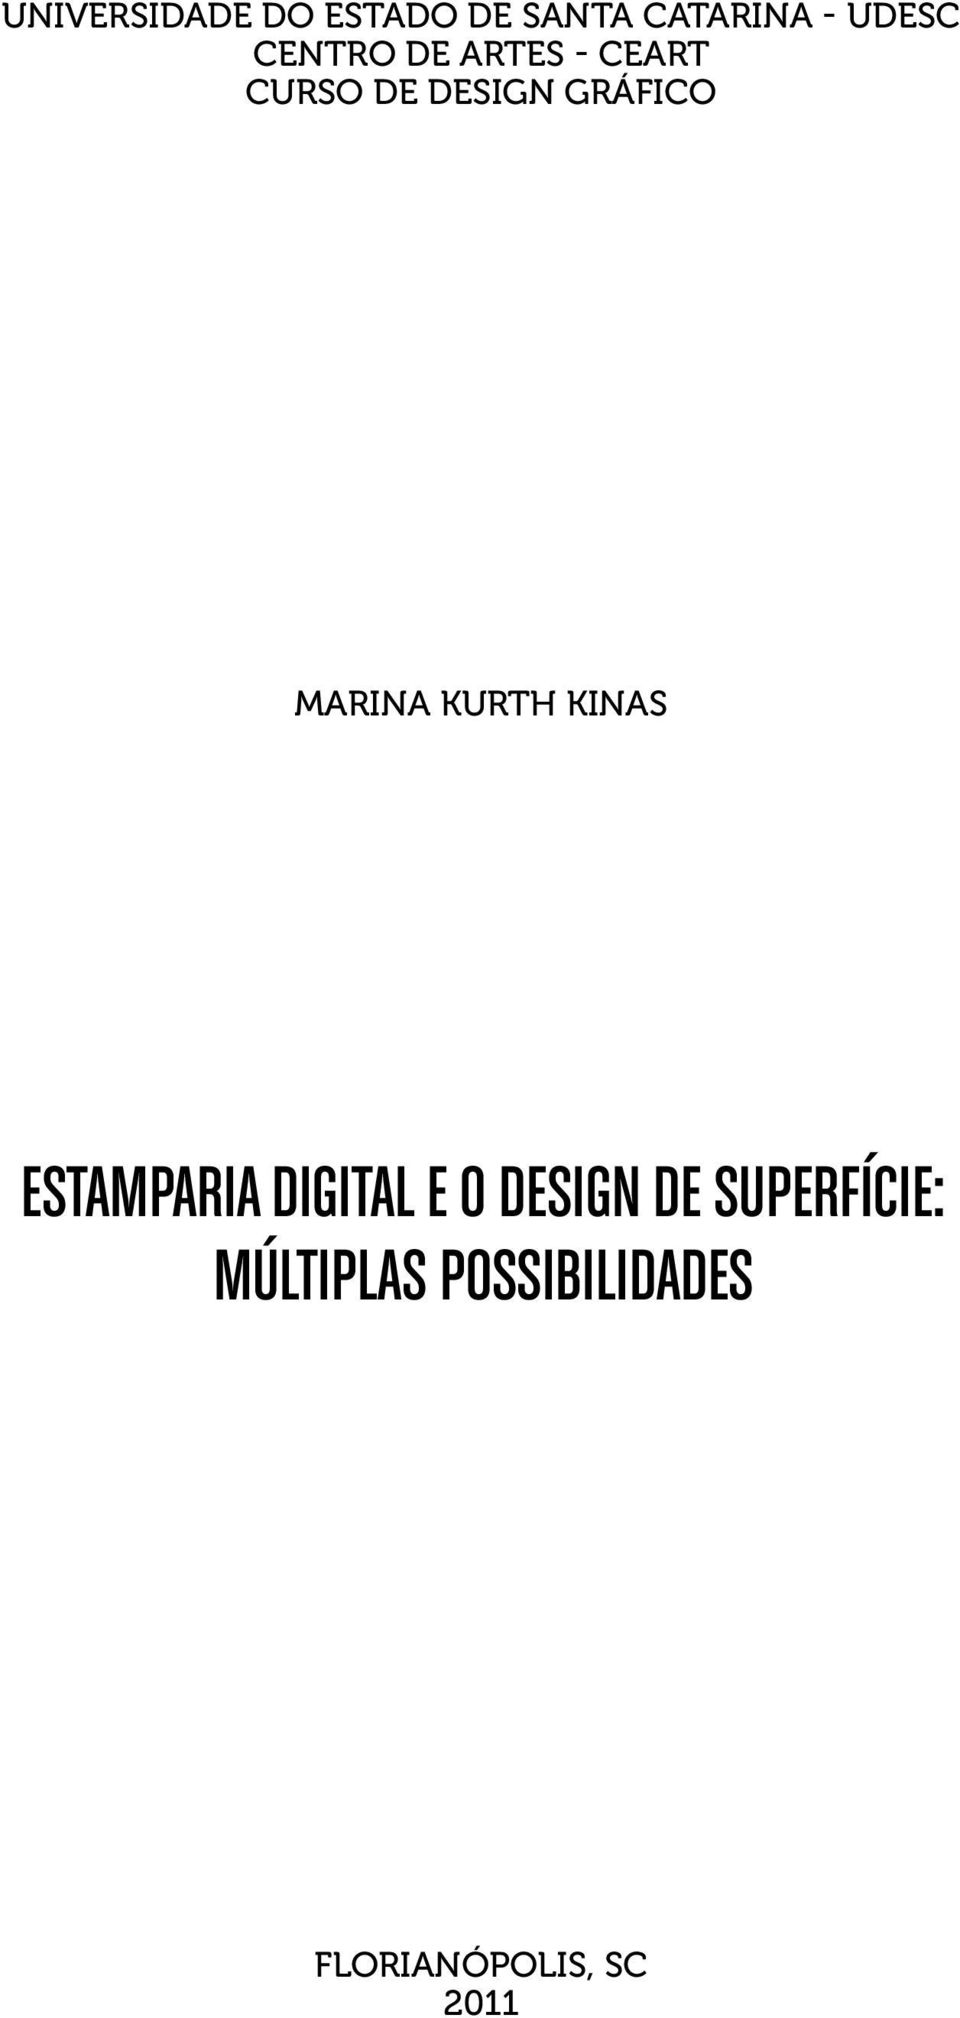 MARINA KURTH KINAS Estamparia digital e o design de